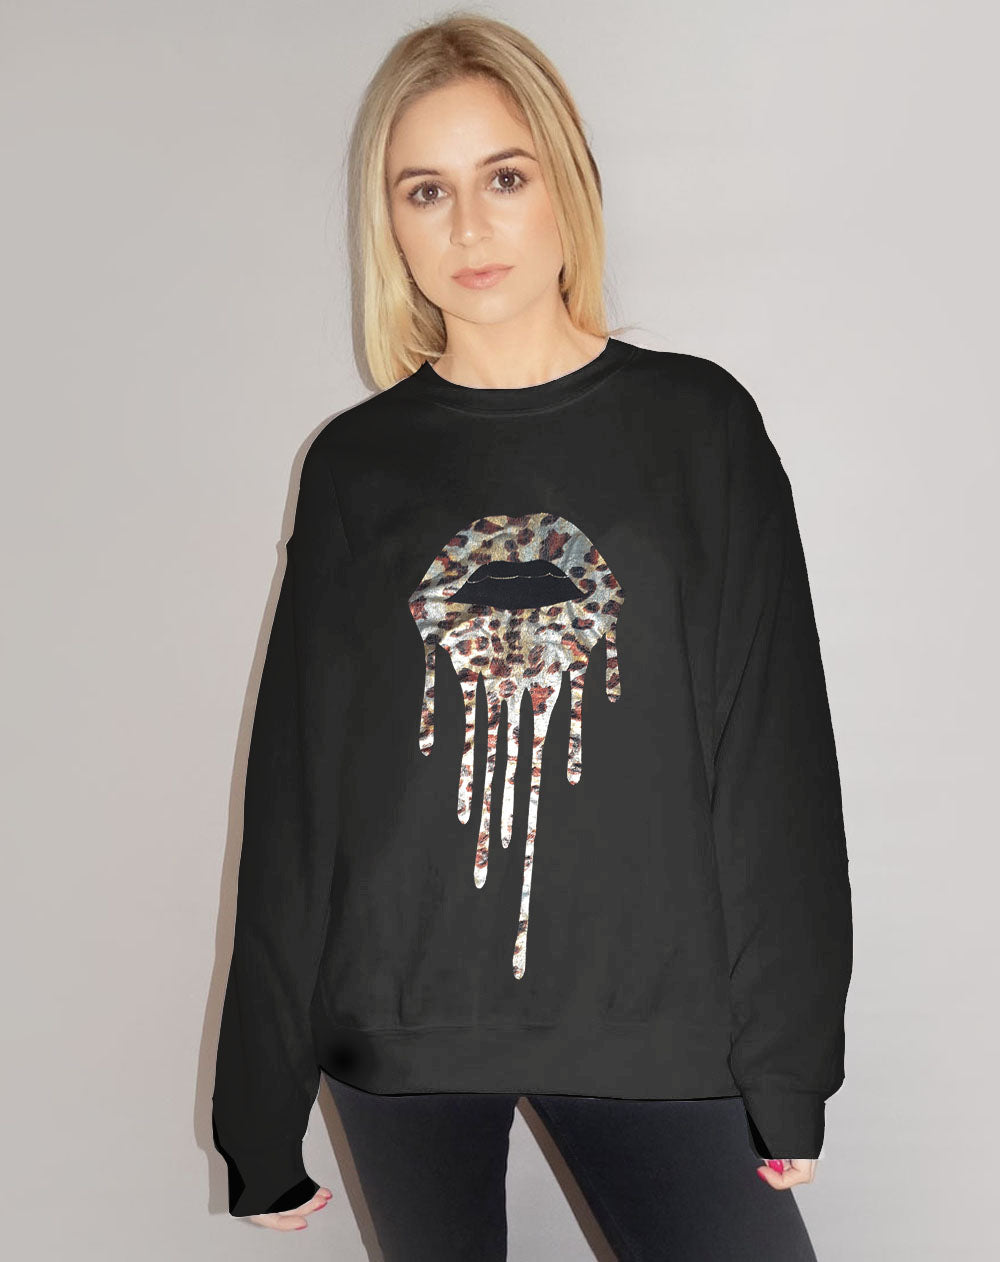 Jumper In Black With Silver Foil Leopard Print Drip Lip